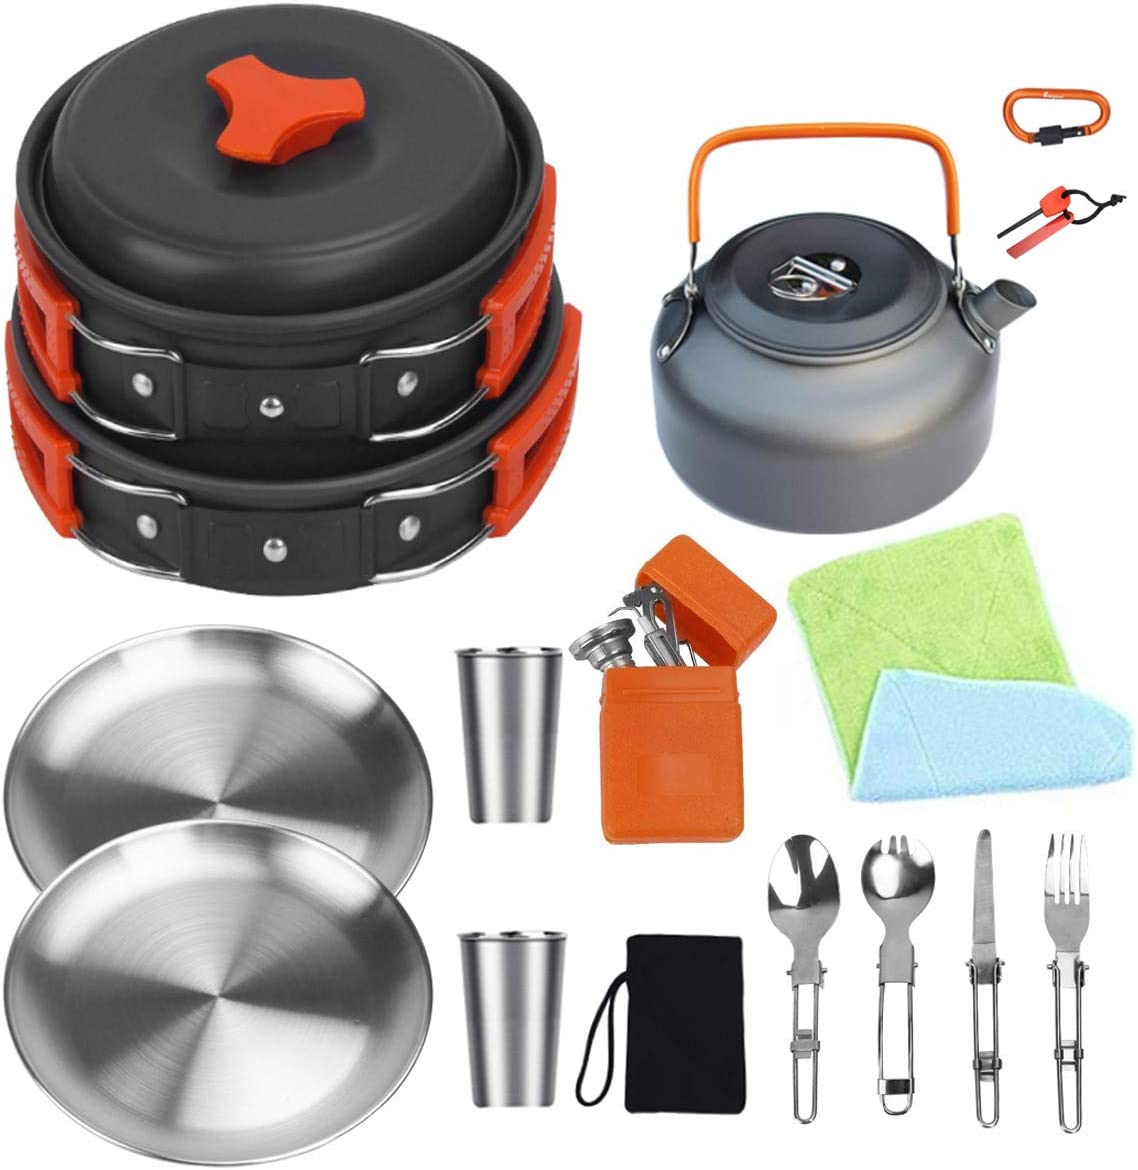 Bisgear Camping Cookware Kettle Pot Pan Mess Kit Stainless Steel Cup Plates Utensil Backpacking Gear Bug Out Bag Cooking Equipment Picnic Cookset Carabiner /& Fire Starter for 2 Person